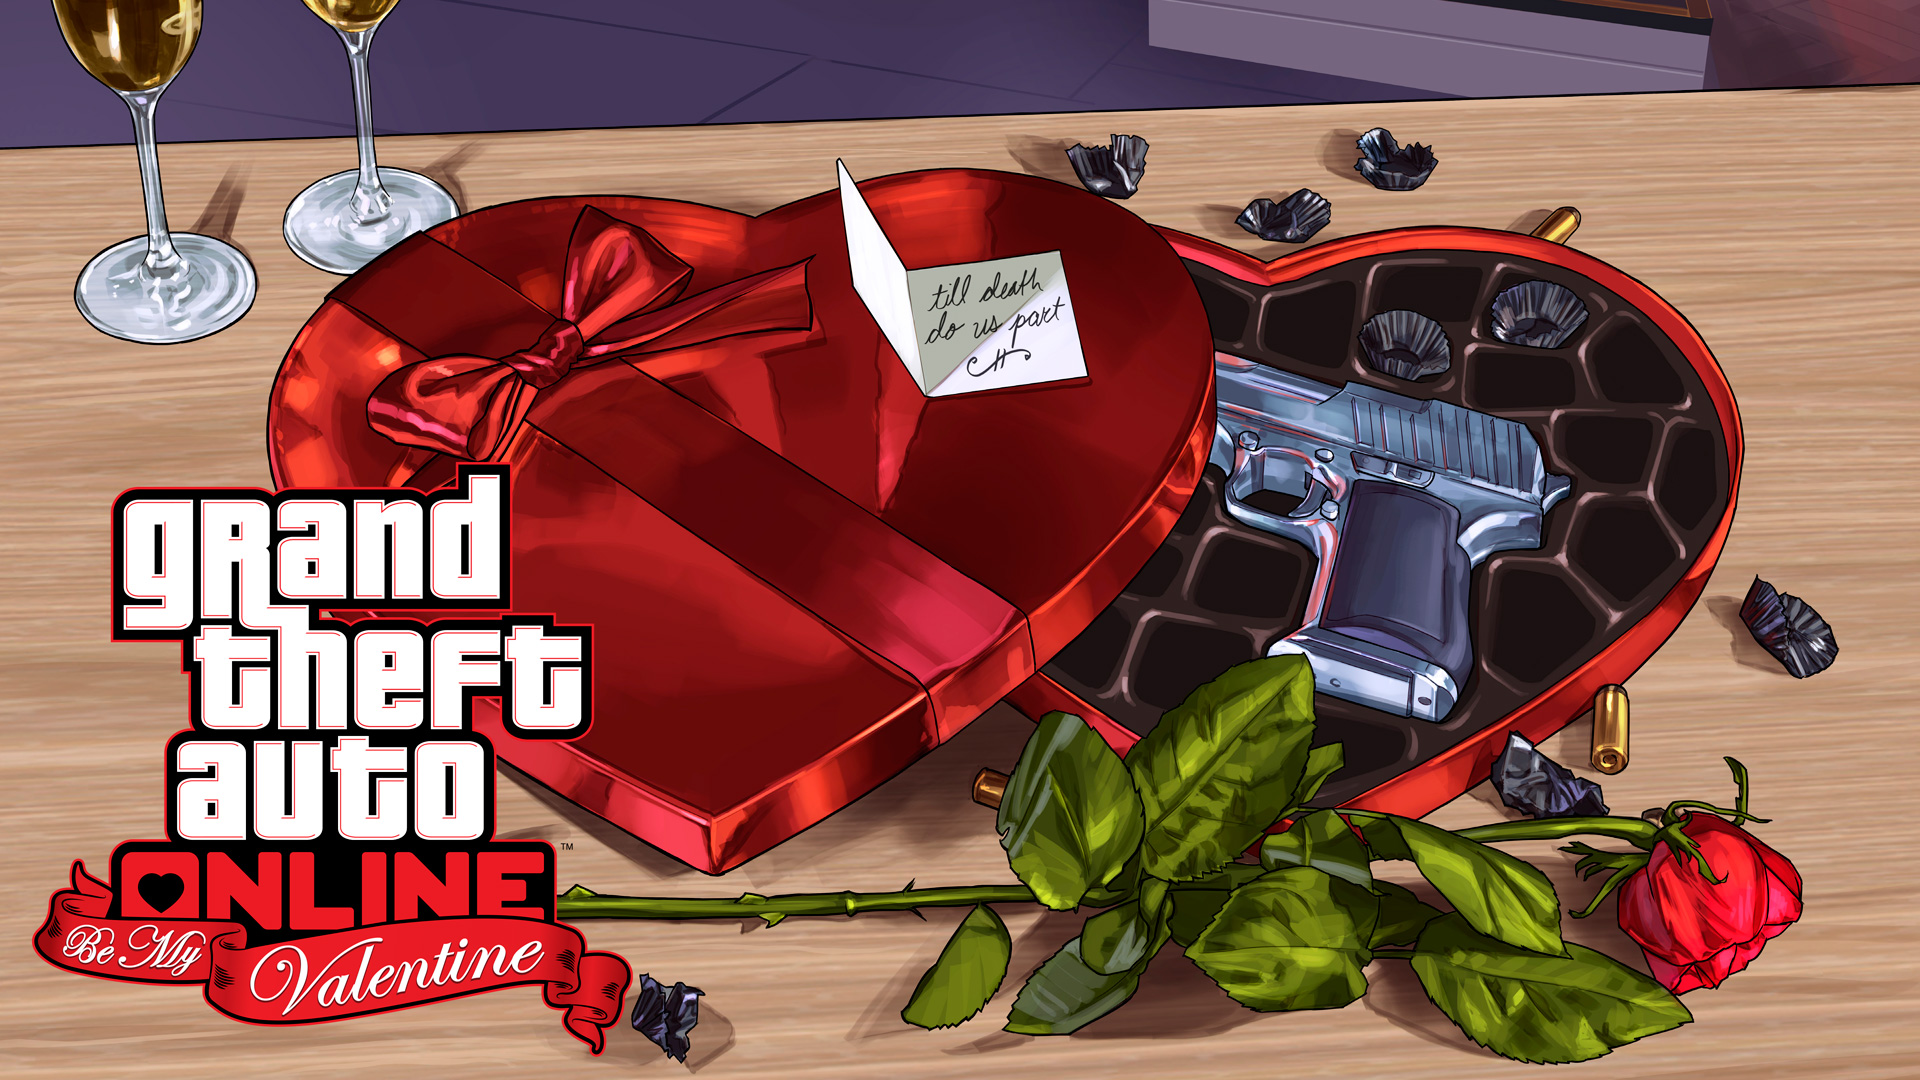 GTA V Artwork BeMyValentine 1205 1600